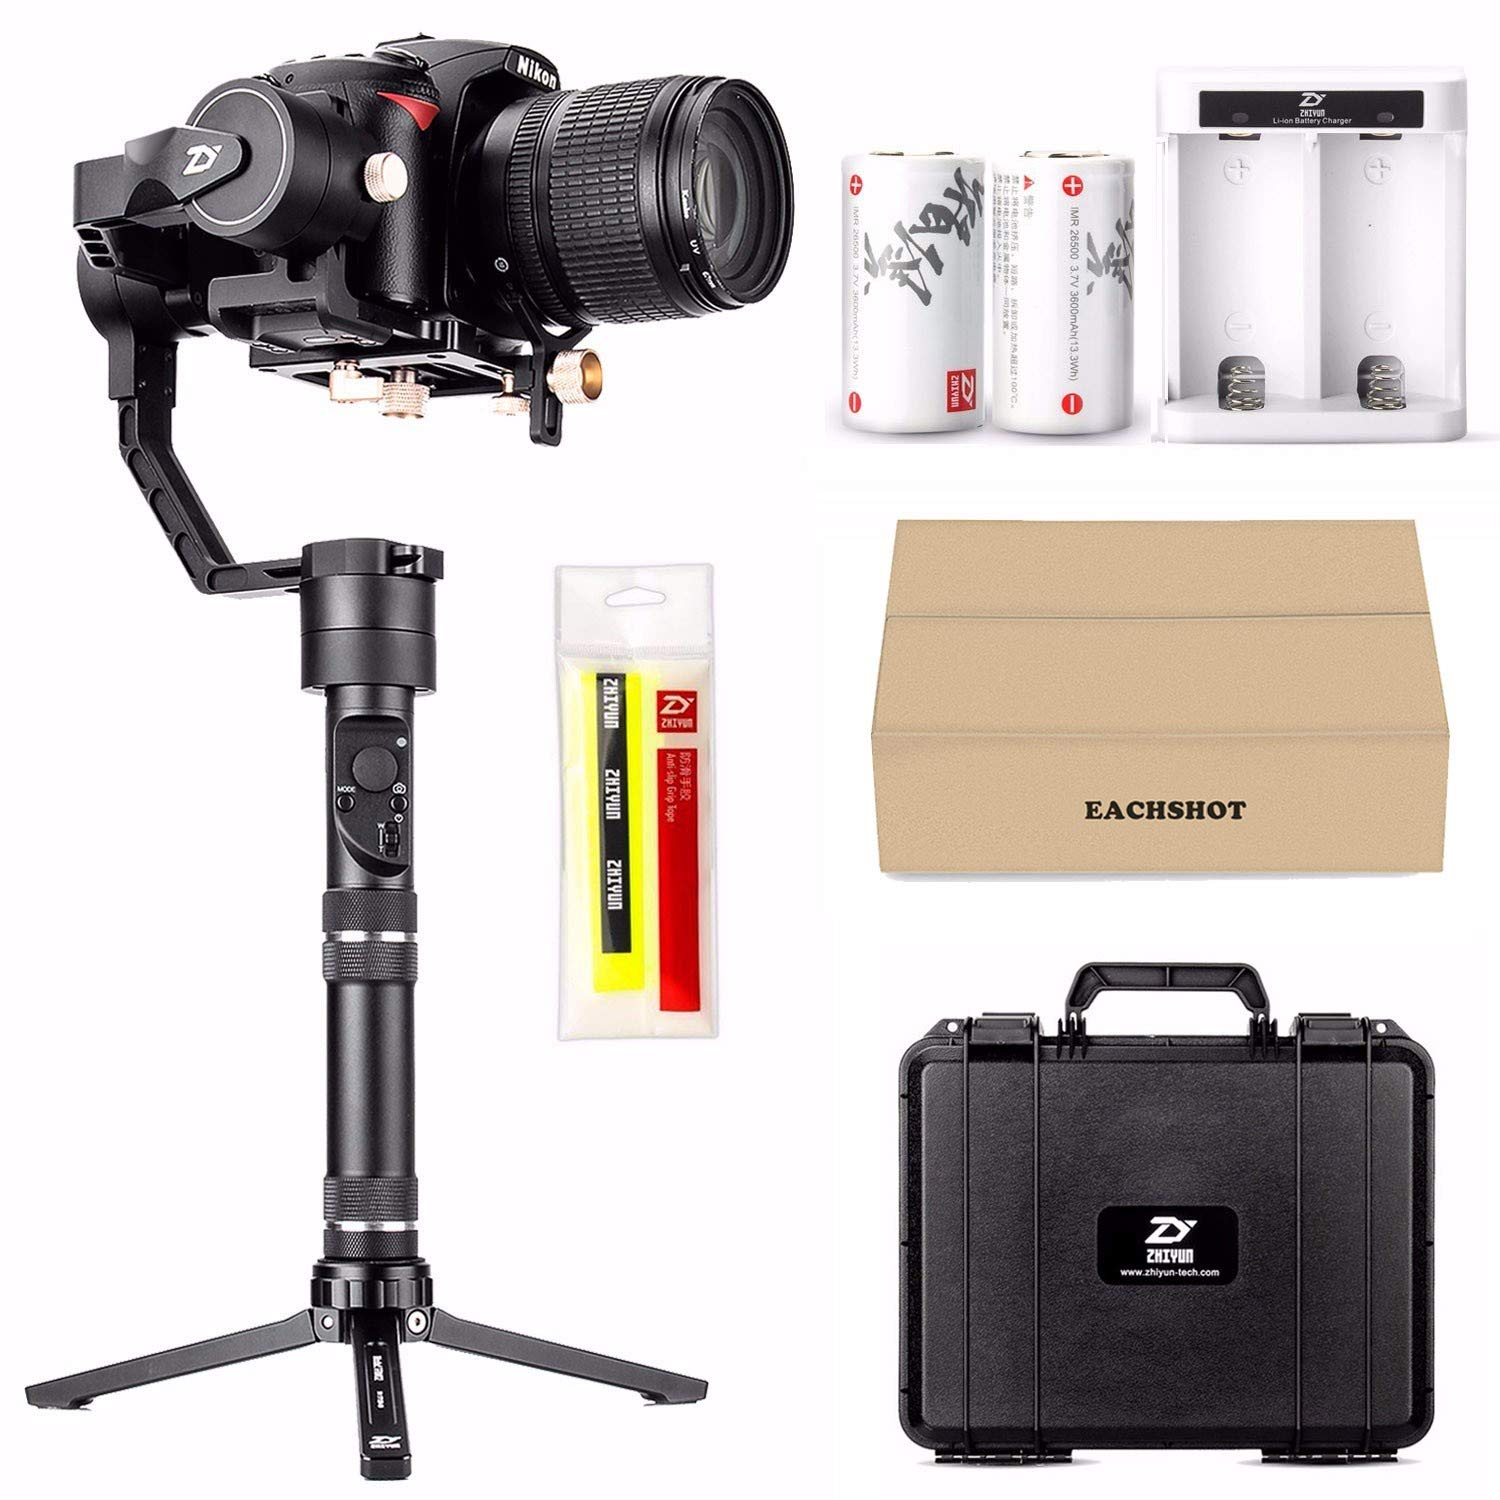 Zhiyun Crane Plus 3-Axis Handheld Gimbal Stabilizer for DSLR and Mirrorless Camera compatible Sony Panasonic LUMIX Nikon Canon POV Large Payload Timelapse Object Tracking New Version zhi yun Crane V2 by zhi yun